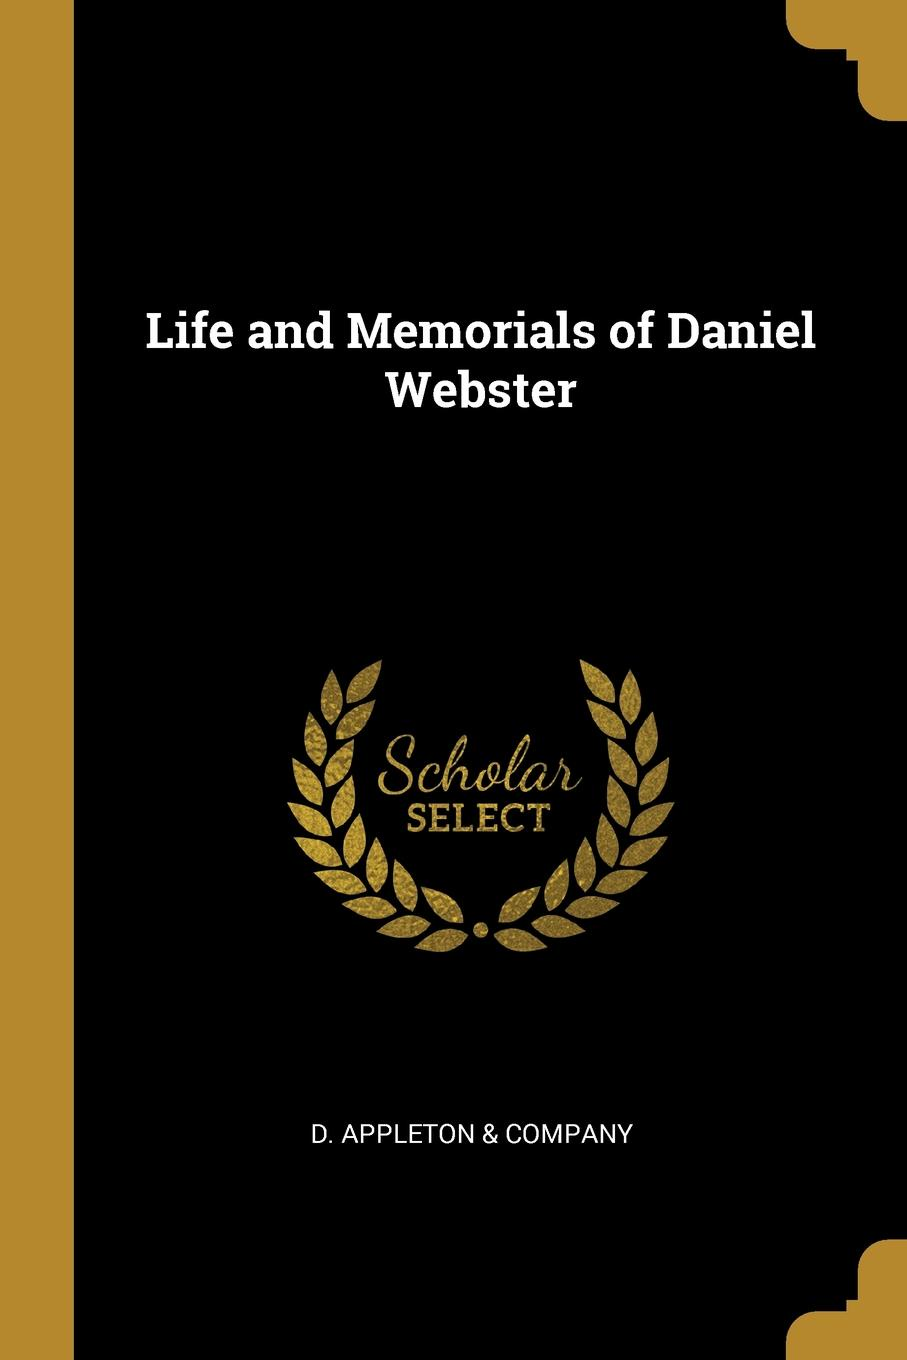 D. Appleton & Company. Life and Memorials of Daniel Webster